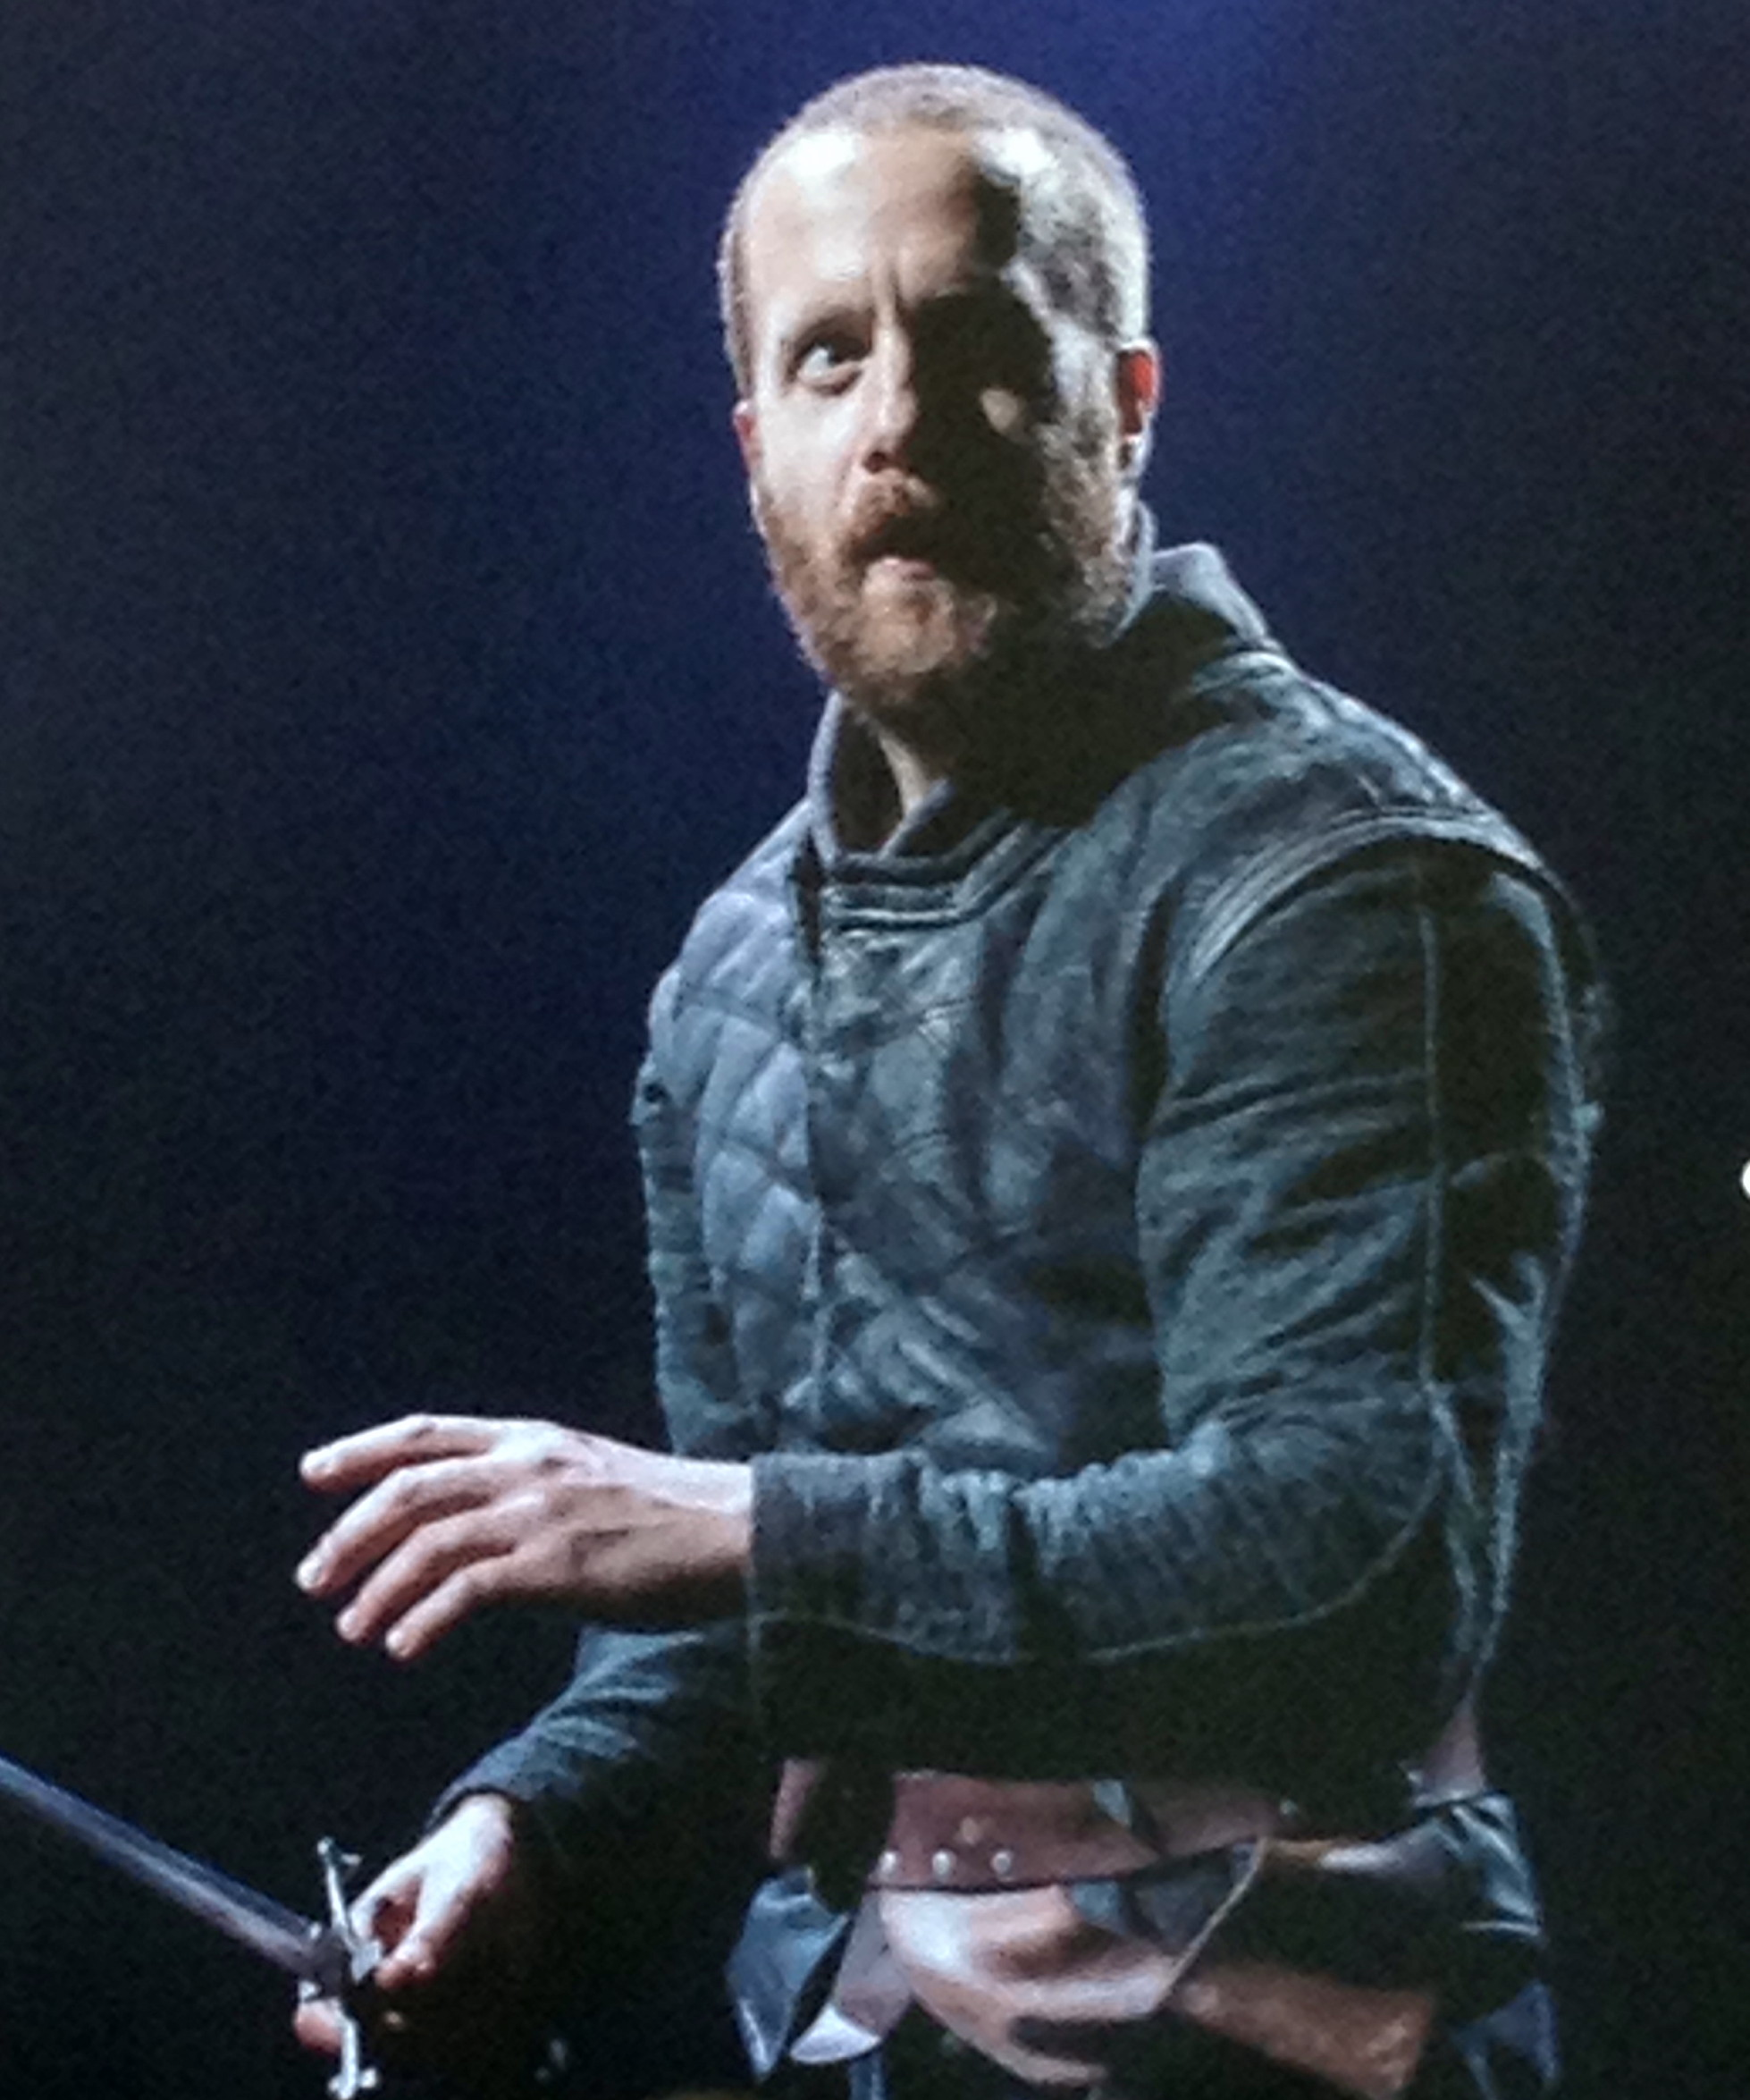 macduff analysis Speeches (lines) for macduff in macbeth total: 59 print/save view options: show cue speeches show full speeches # act, scene, line (click to see in context) speech text: 1 ii,3,782 those that macbeth hath slain 19 ii,4,978 they were suborn'd: malcolm and donalbain, the king's.